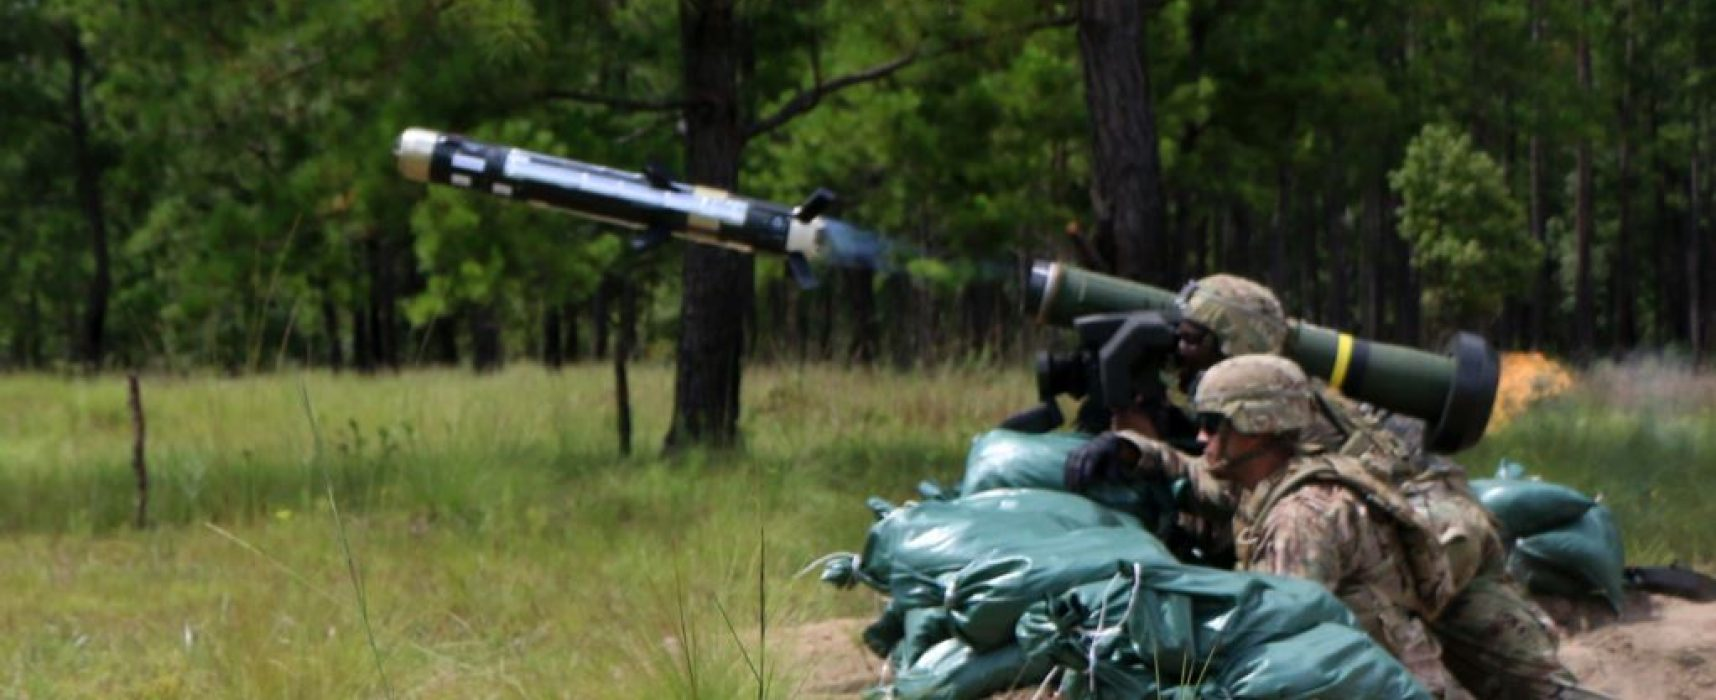 Picture Does Not Lie — Russian Claim to Have Captured Javelin Missile System is Wrong